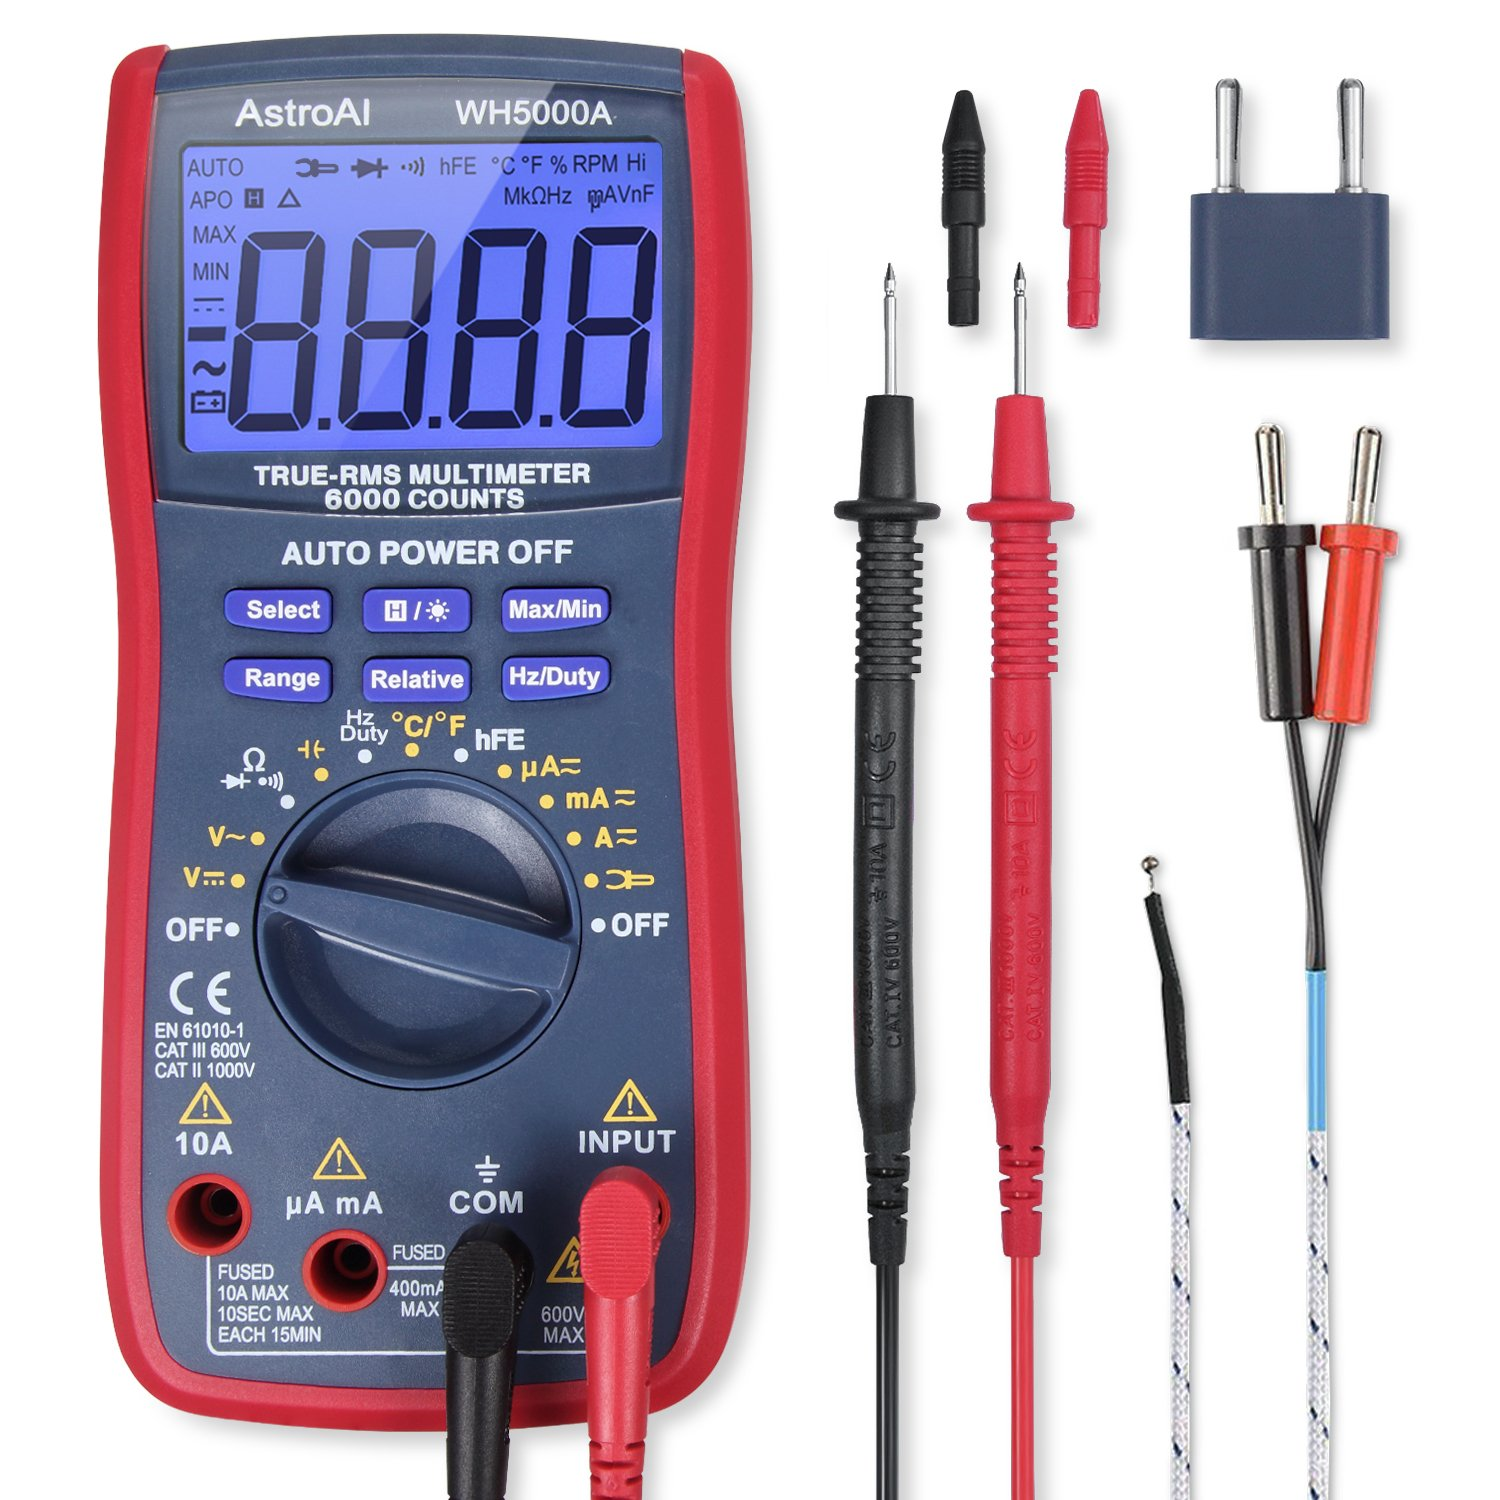 AstroAI Multimeter